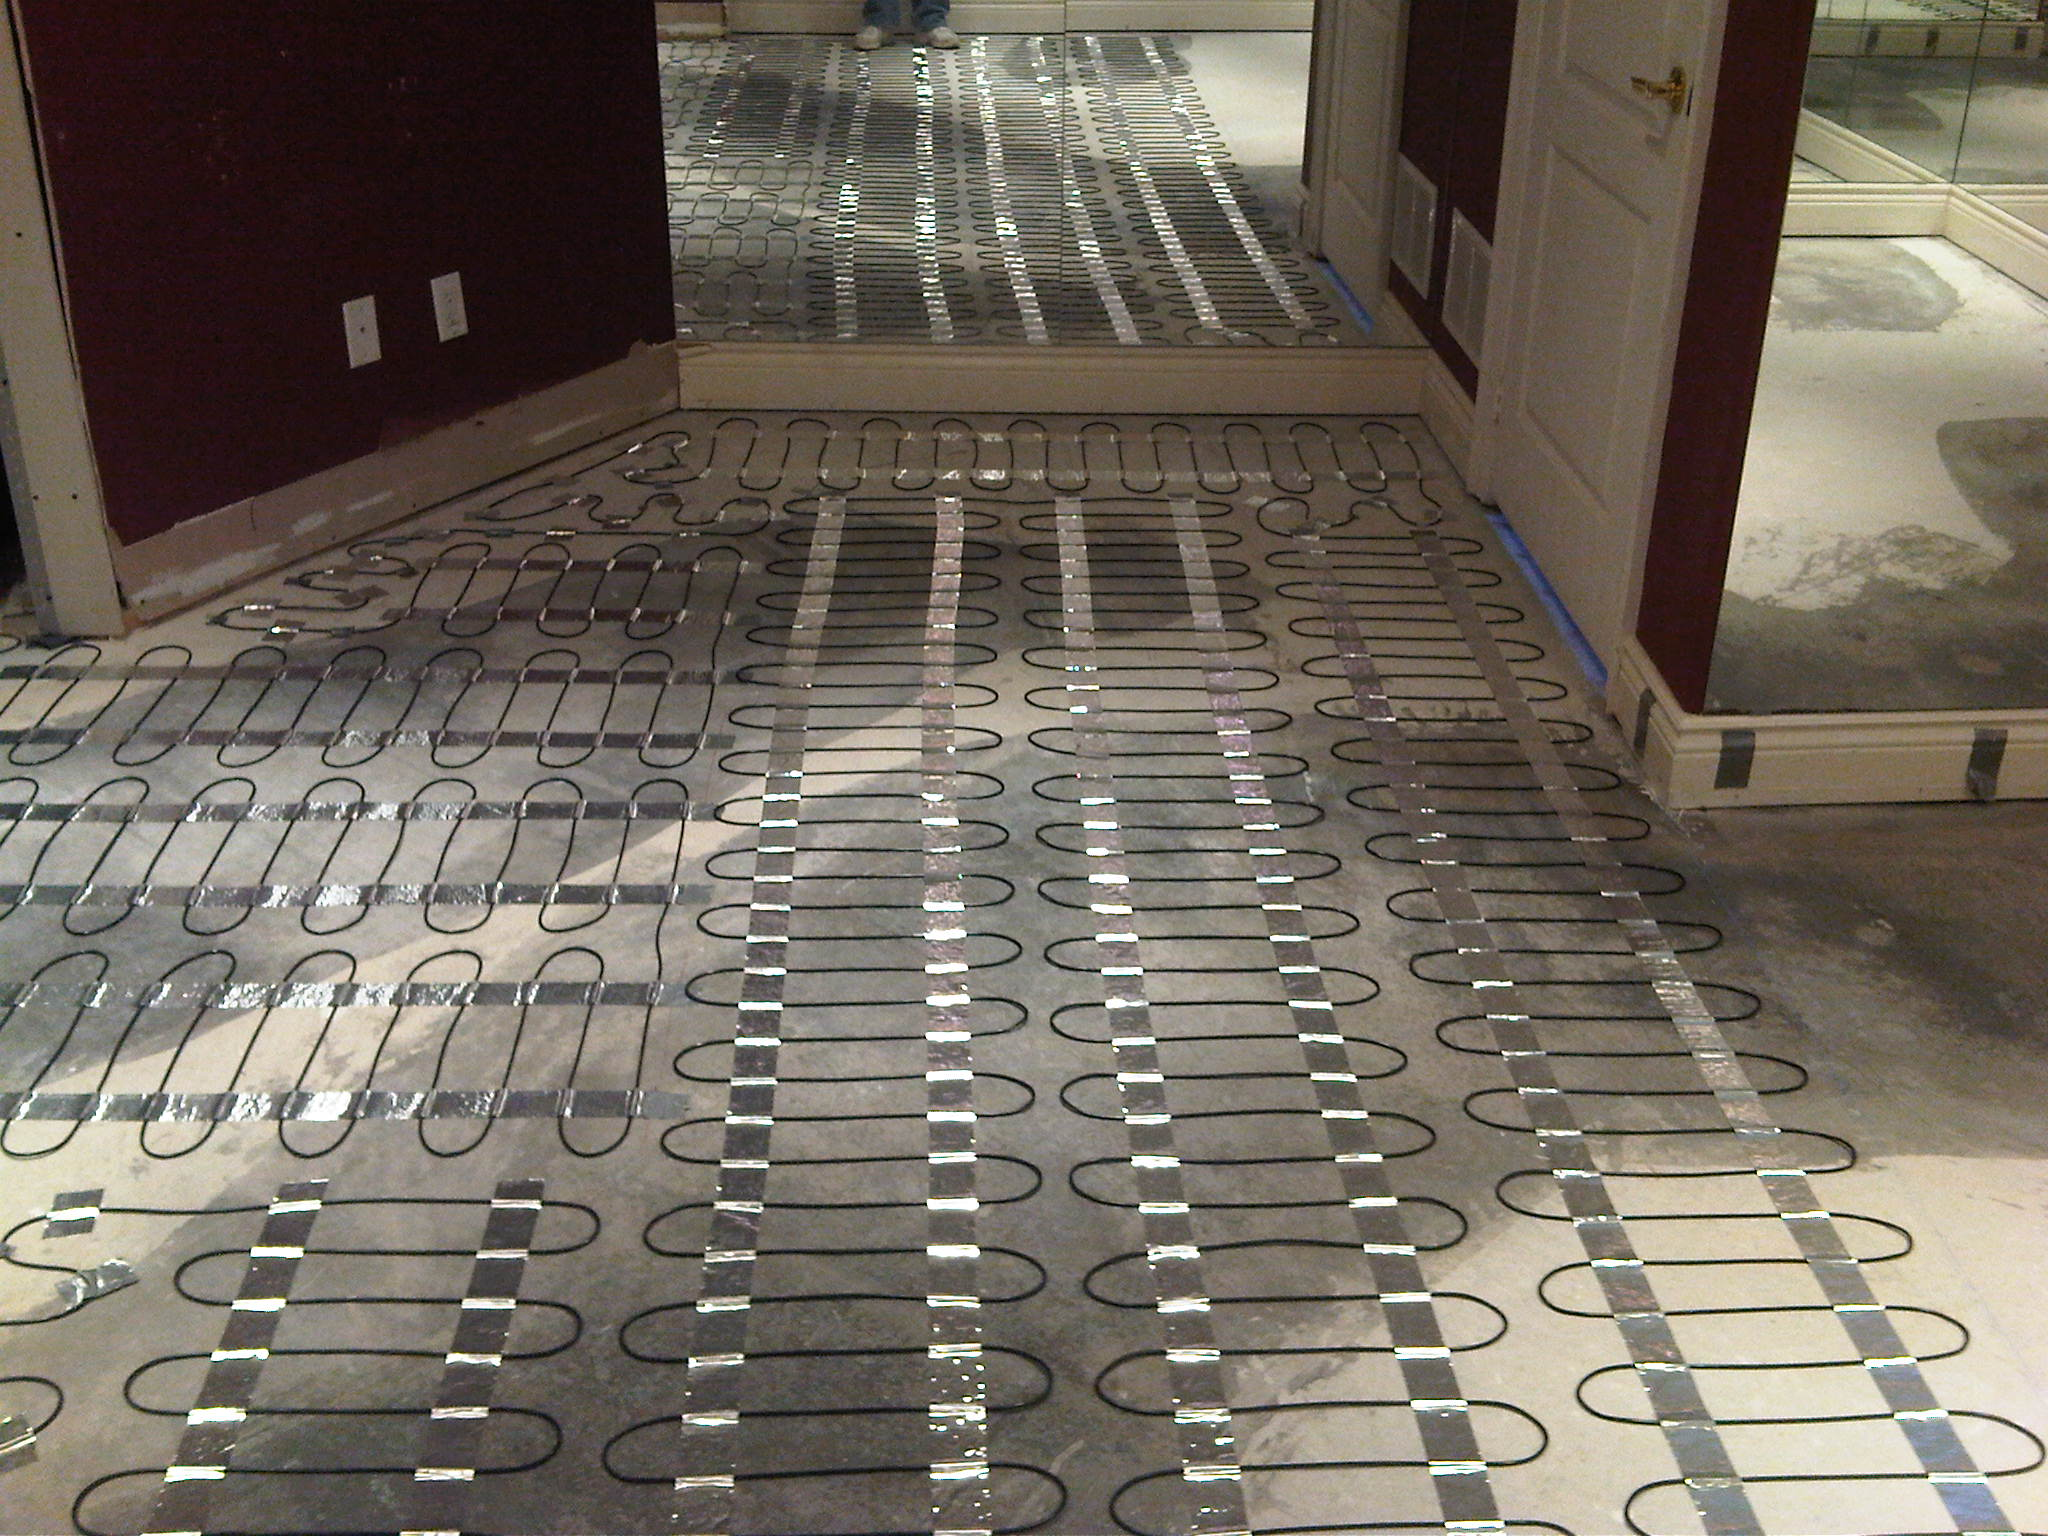 Gallery Floor Heating Systems Inc